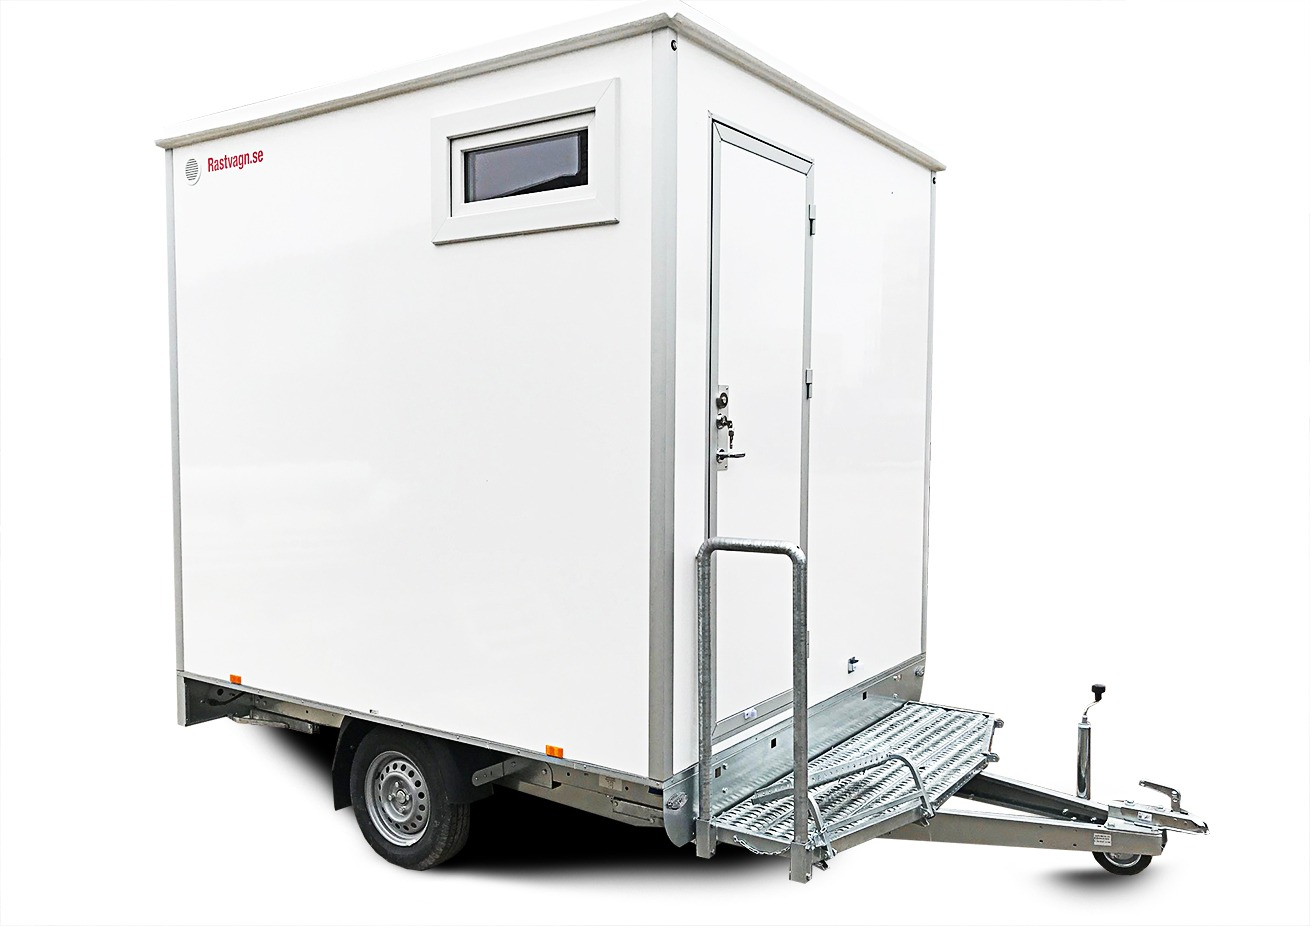 Toilet and shower trailers